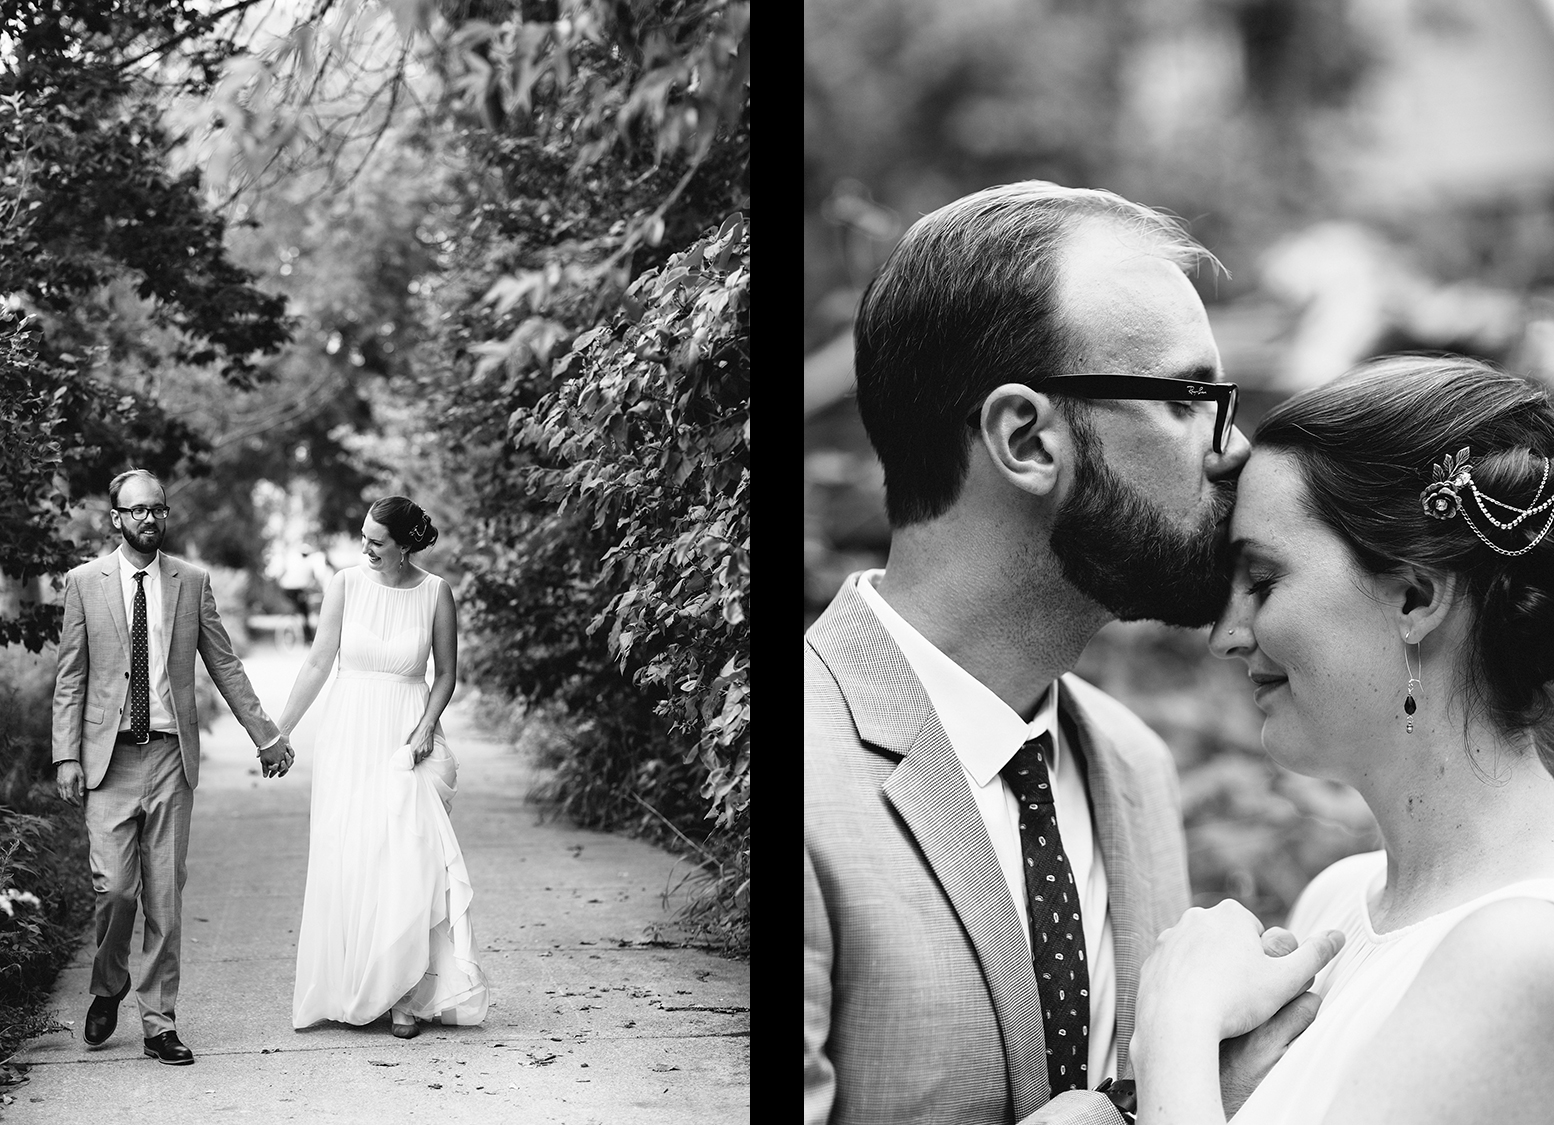 16-Toronto-Island-Best-Film-Wedding-Photographers-3b-photography-analog-photography-wards-island-clubhouse-green-wedding-shoes-vintage-venue-bride-and-groom-photos-intimate-candid-documentary-moments-flowers-pickett-fence-walking-laughing-bw.jpg